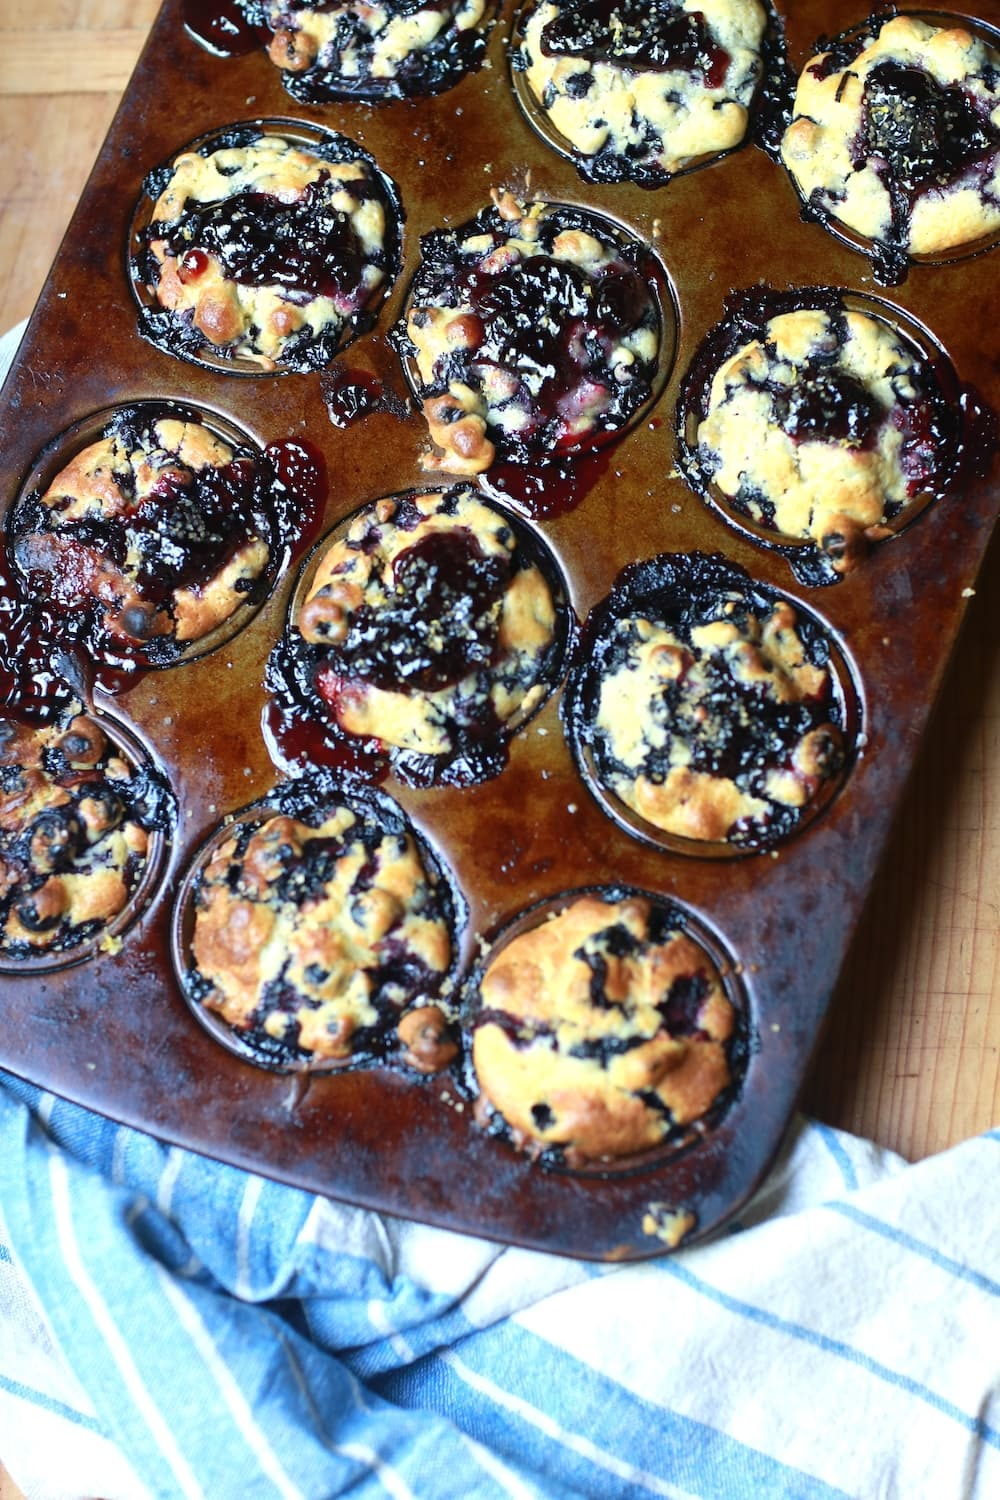 muffins in muffin tin, fresh from oven